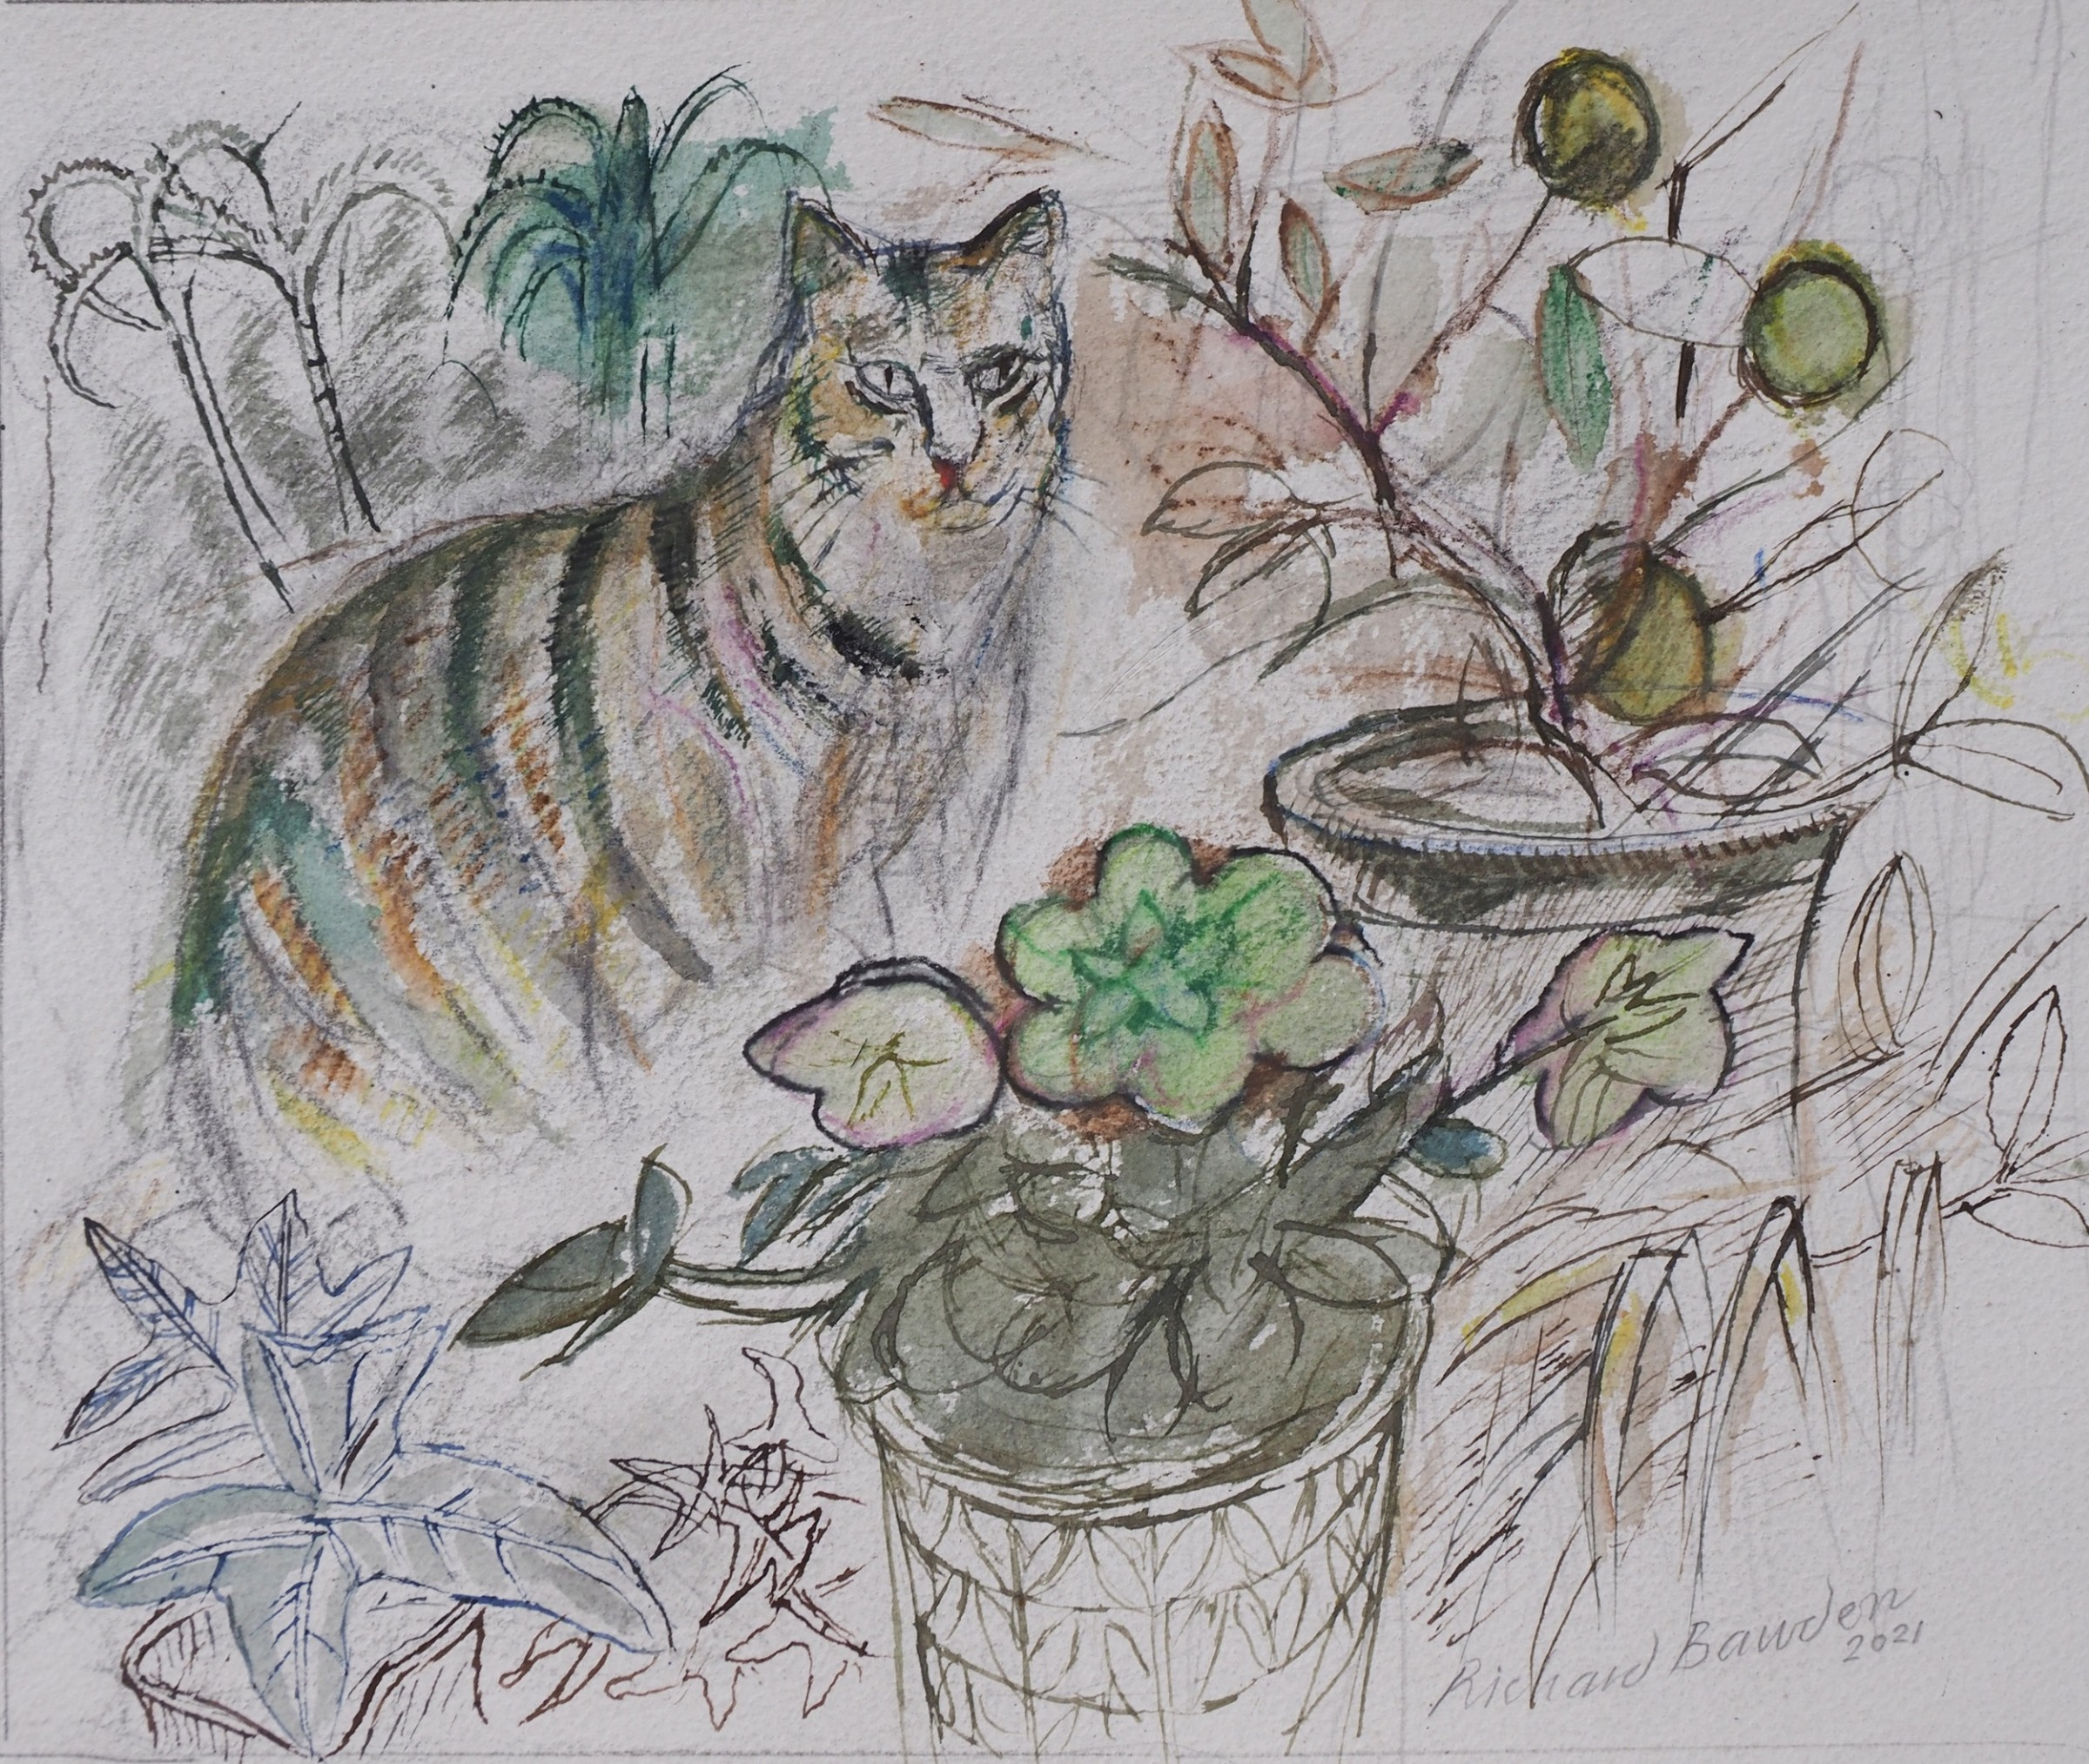 """<span class=""""link fancybox-details-link""""><a href=""""/artists/38-richard-bawden/works/12668-richard-bawden-christmas-rose/"""">View Detail Page</a></span><div class=""""artist""""><span class=""""artist""""><strong>Richard Bawden</strong></span></div><div class=""""title""""><em>Christmas Rose</em></div><div class=""""medium"""">pen & ink with watercolour</div><div class=""""dimensions"""">Artwork: 29 x 24cm</div><div class=""""price"""">£480.00</div>"""